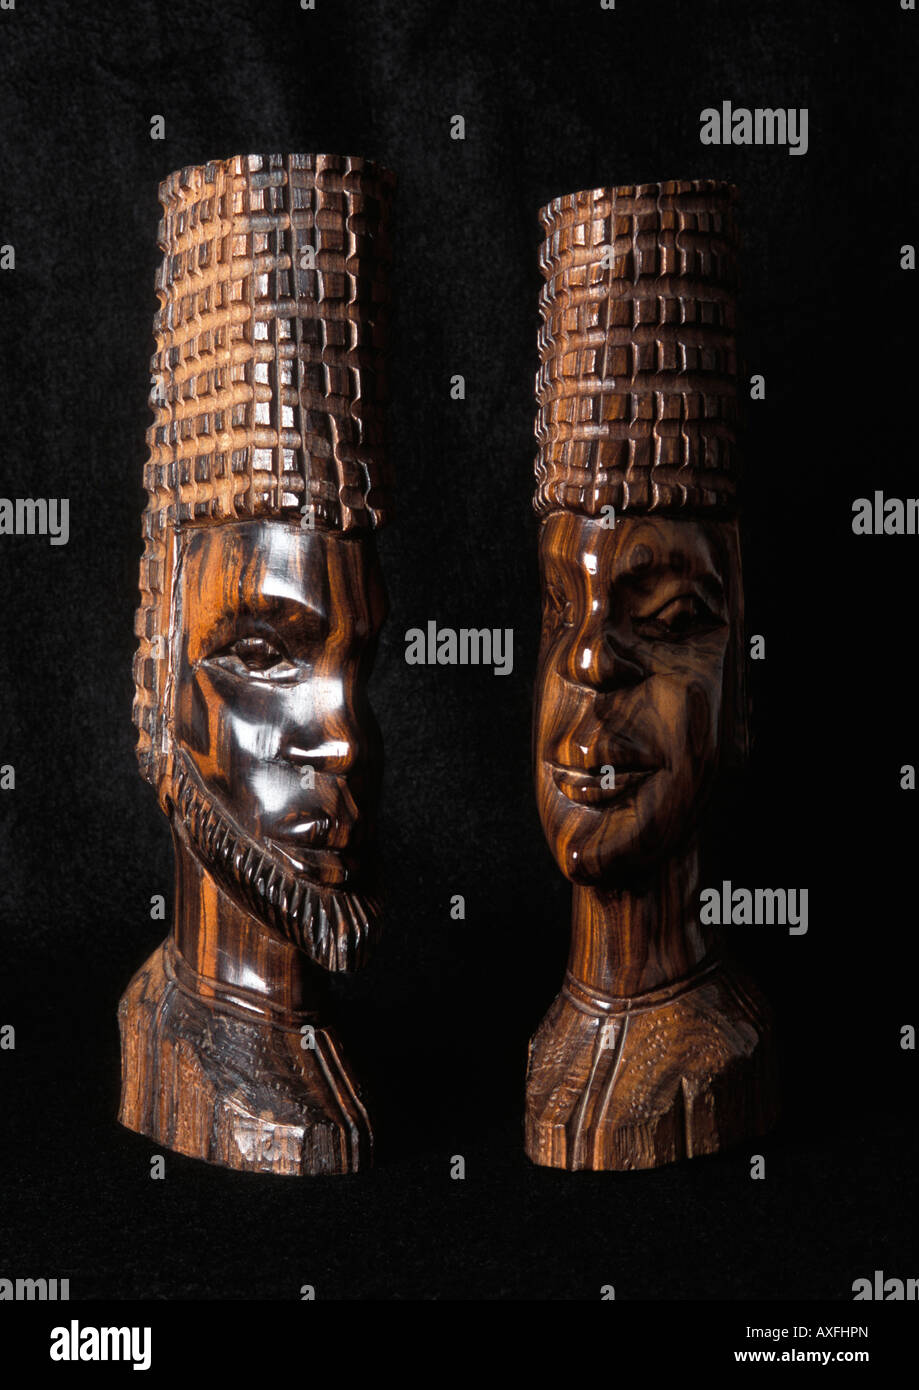 Pair of Ghanaian wooden head busts on black background - Stock Image